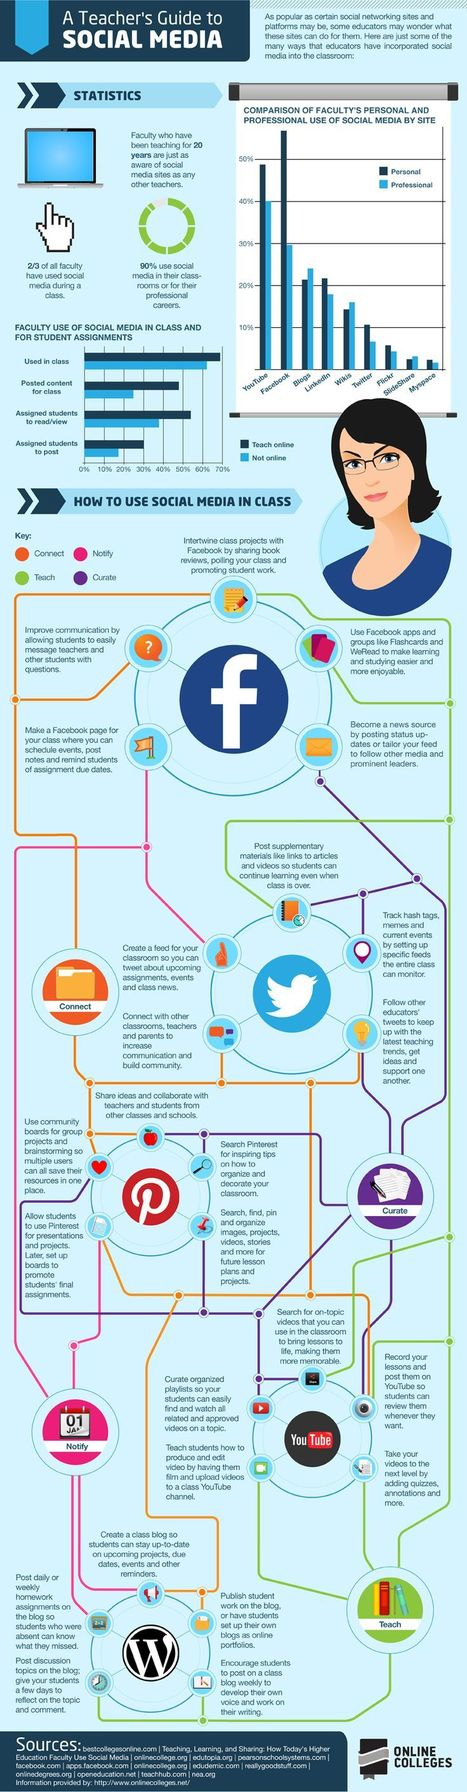 The essential teacher's guide to social media | Technologies numériques & Education | Scoop.it